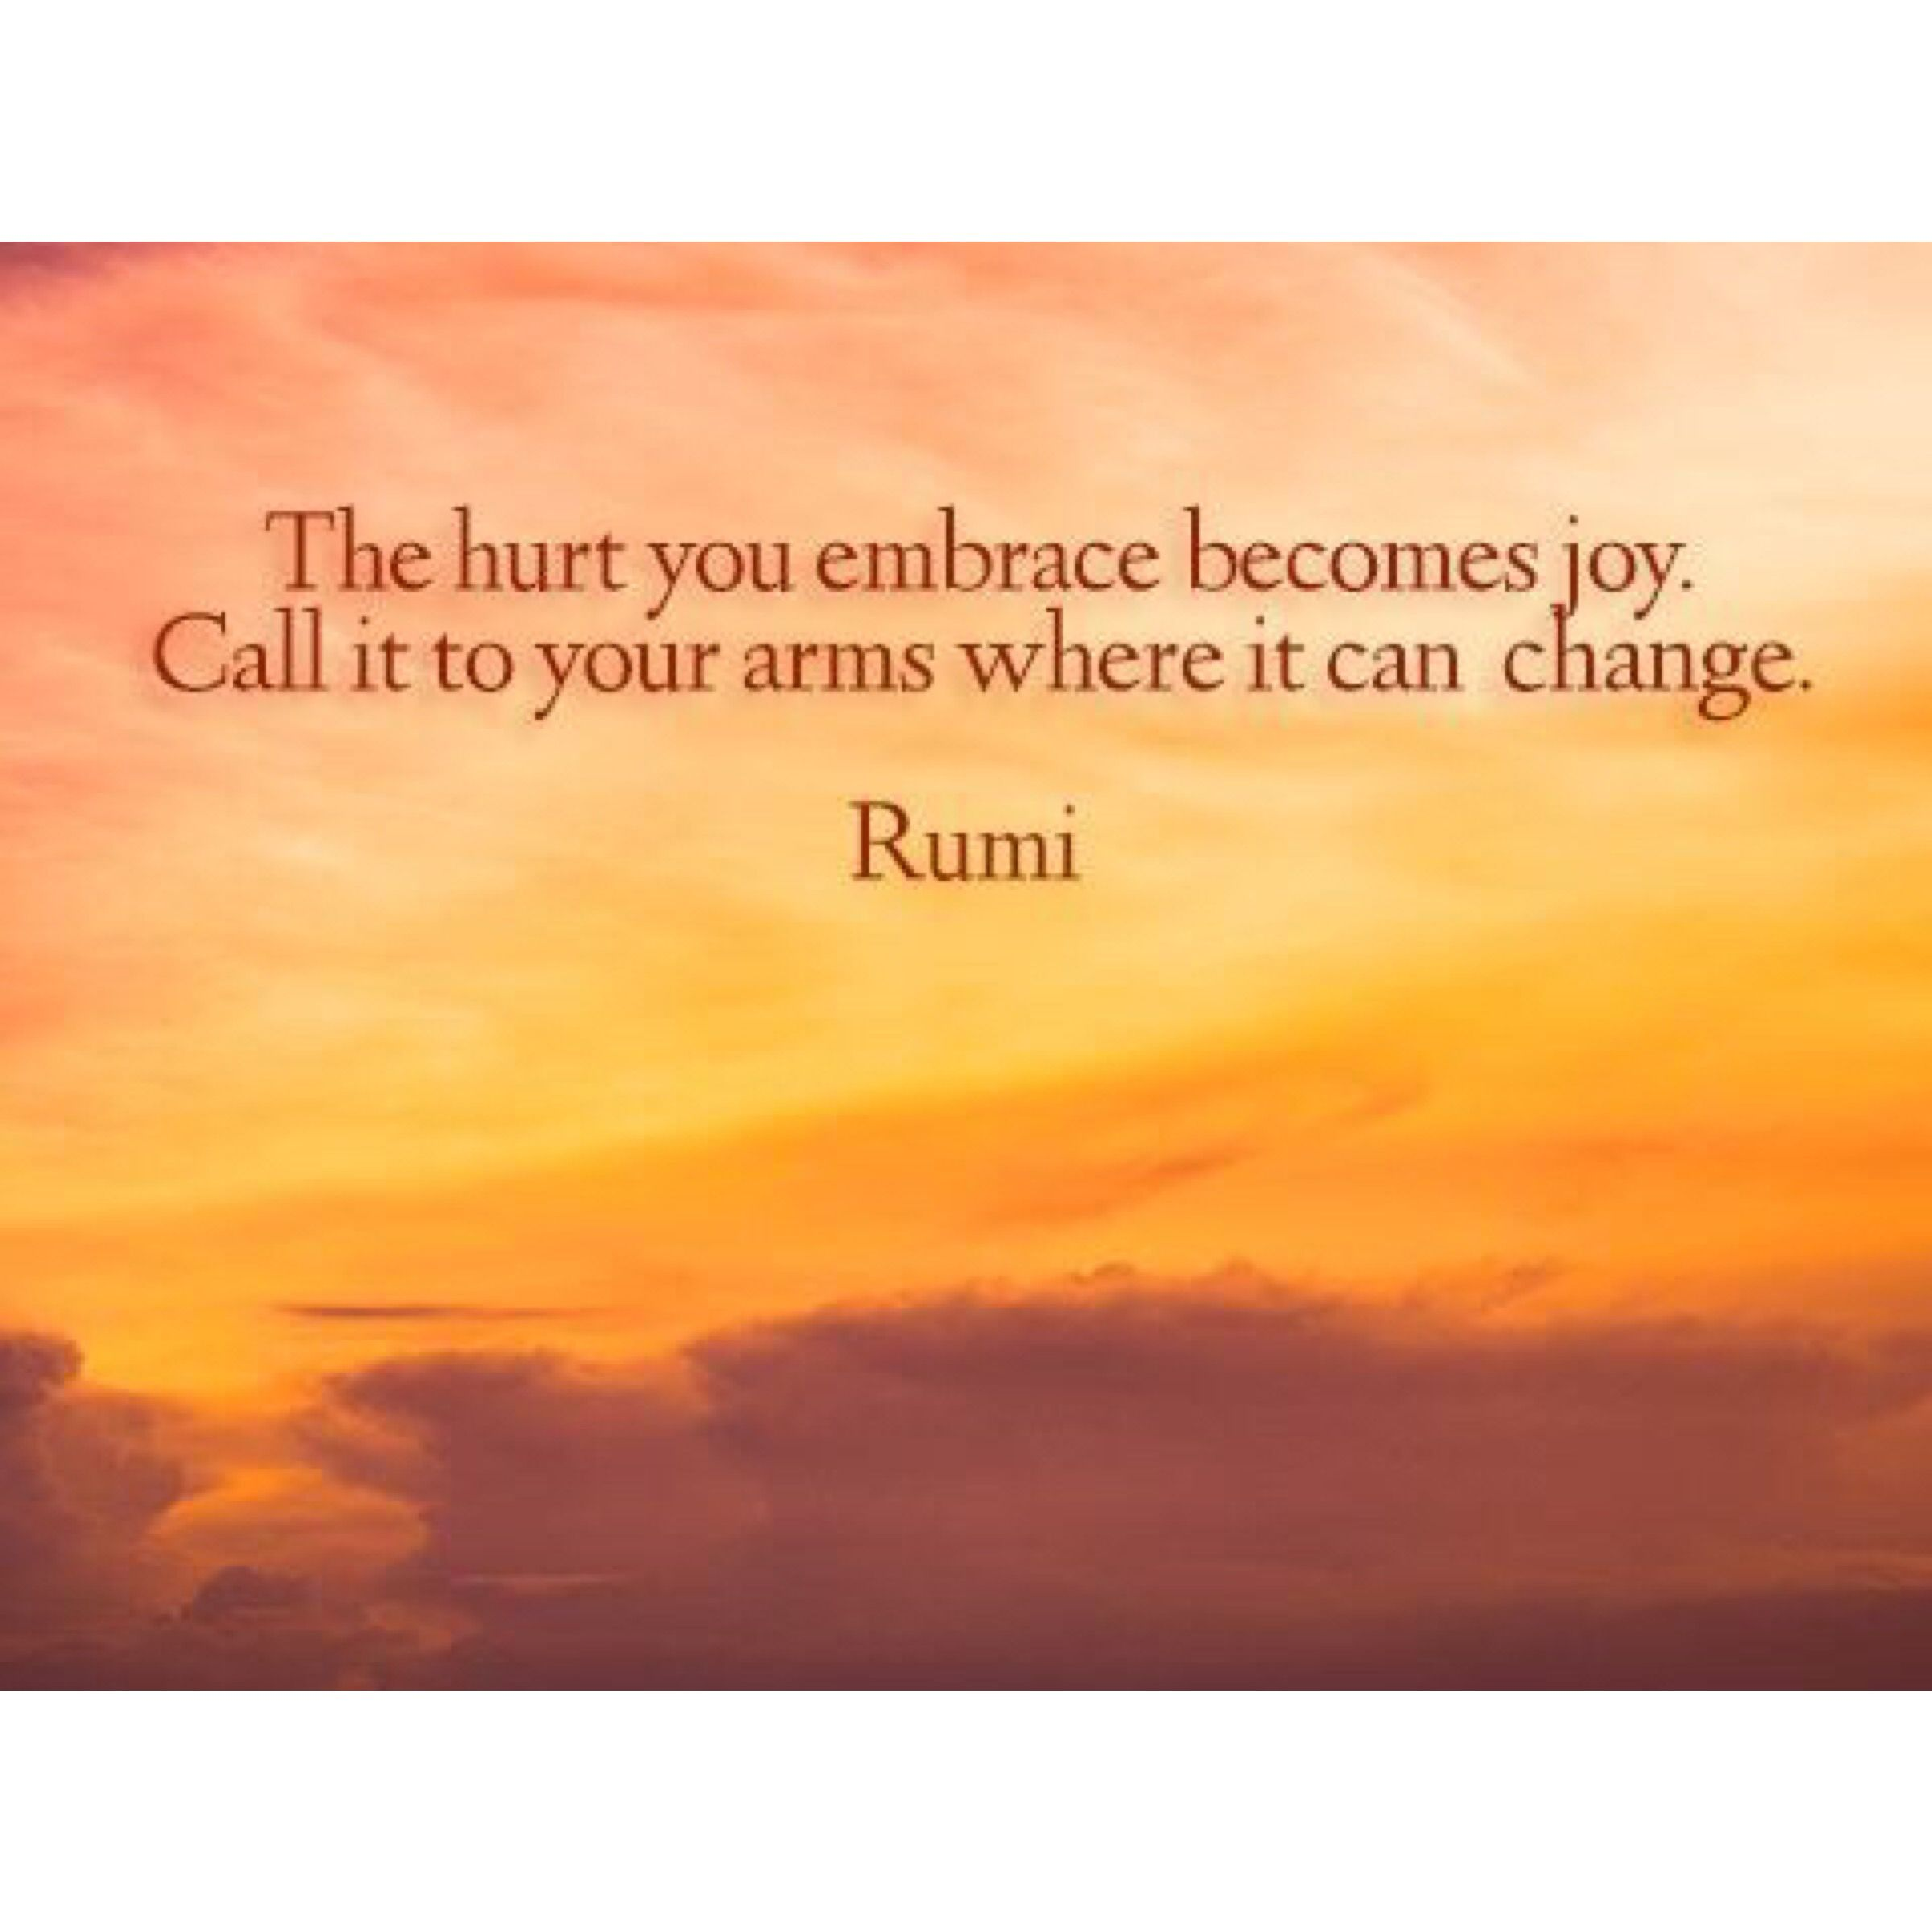 Spiritual Quotes On Love Pindazzy On Quotes I Love  Pinterest  Rumi Quotes Wisdom